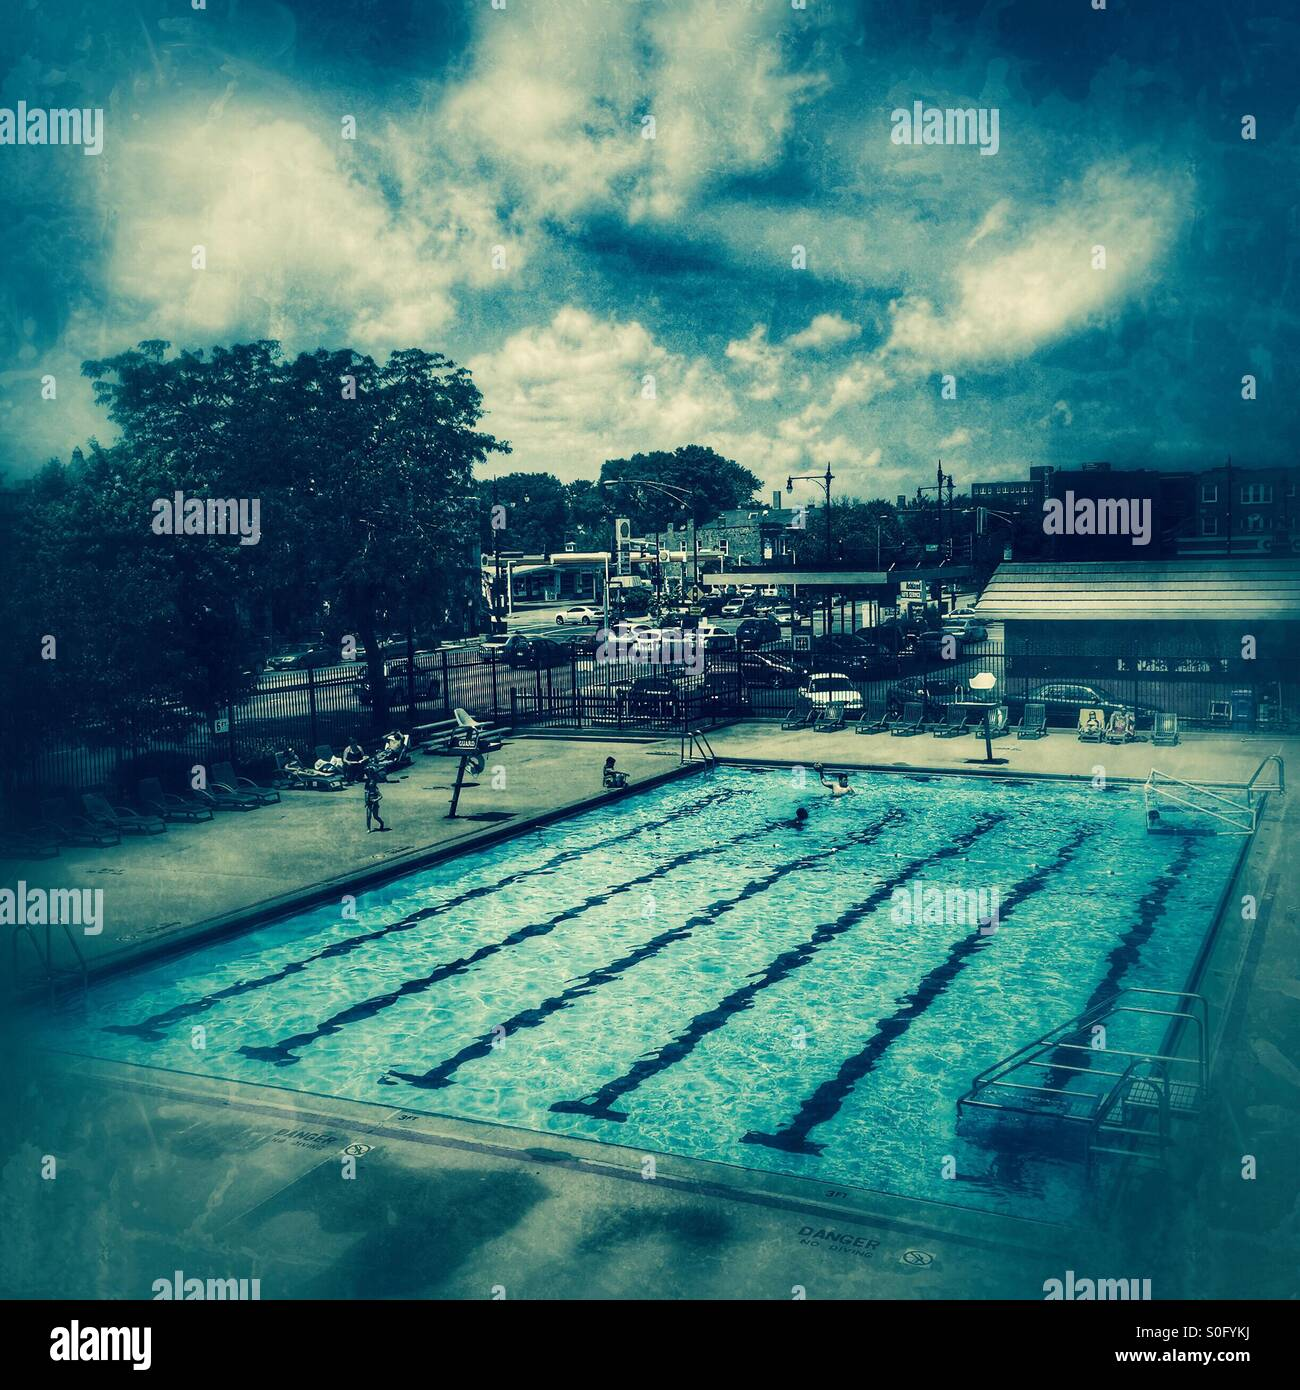 Swimming pool on a hot summer afternoon in the city. - Stock Image